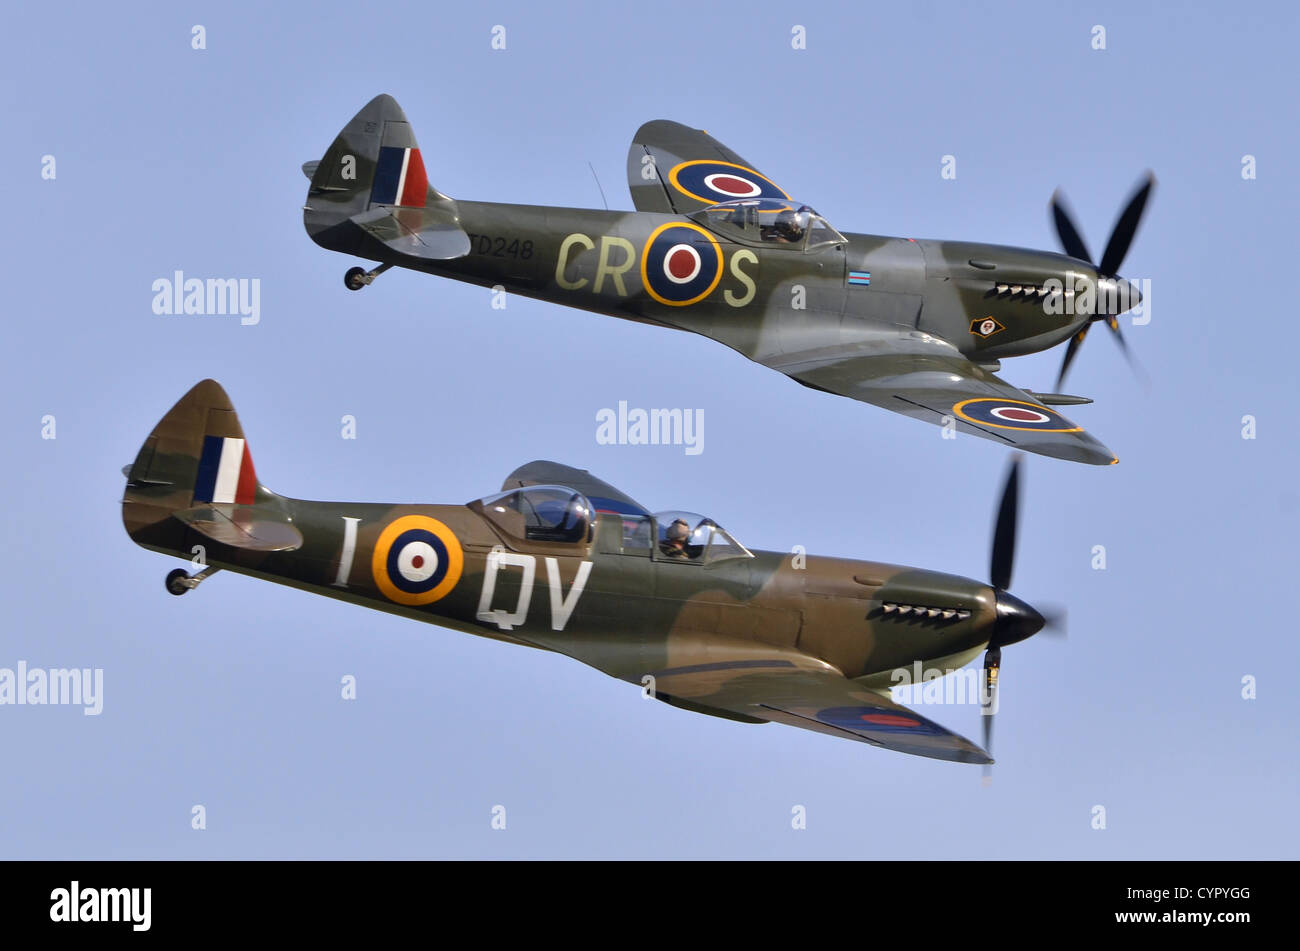 Spitfire T9C and Spitfire LF XIVe aircraft duo in RAF 1940s colours displaying at Duxford Airshow 2012. - Stock Image